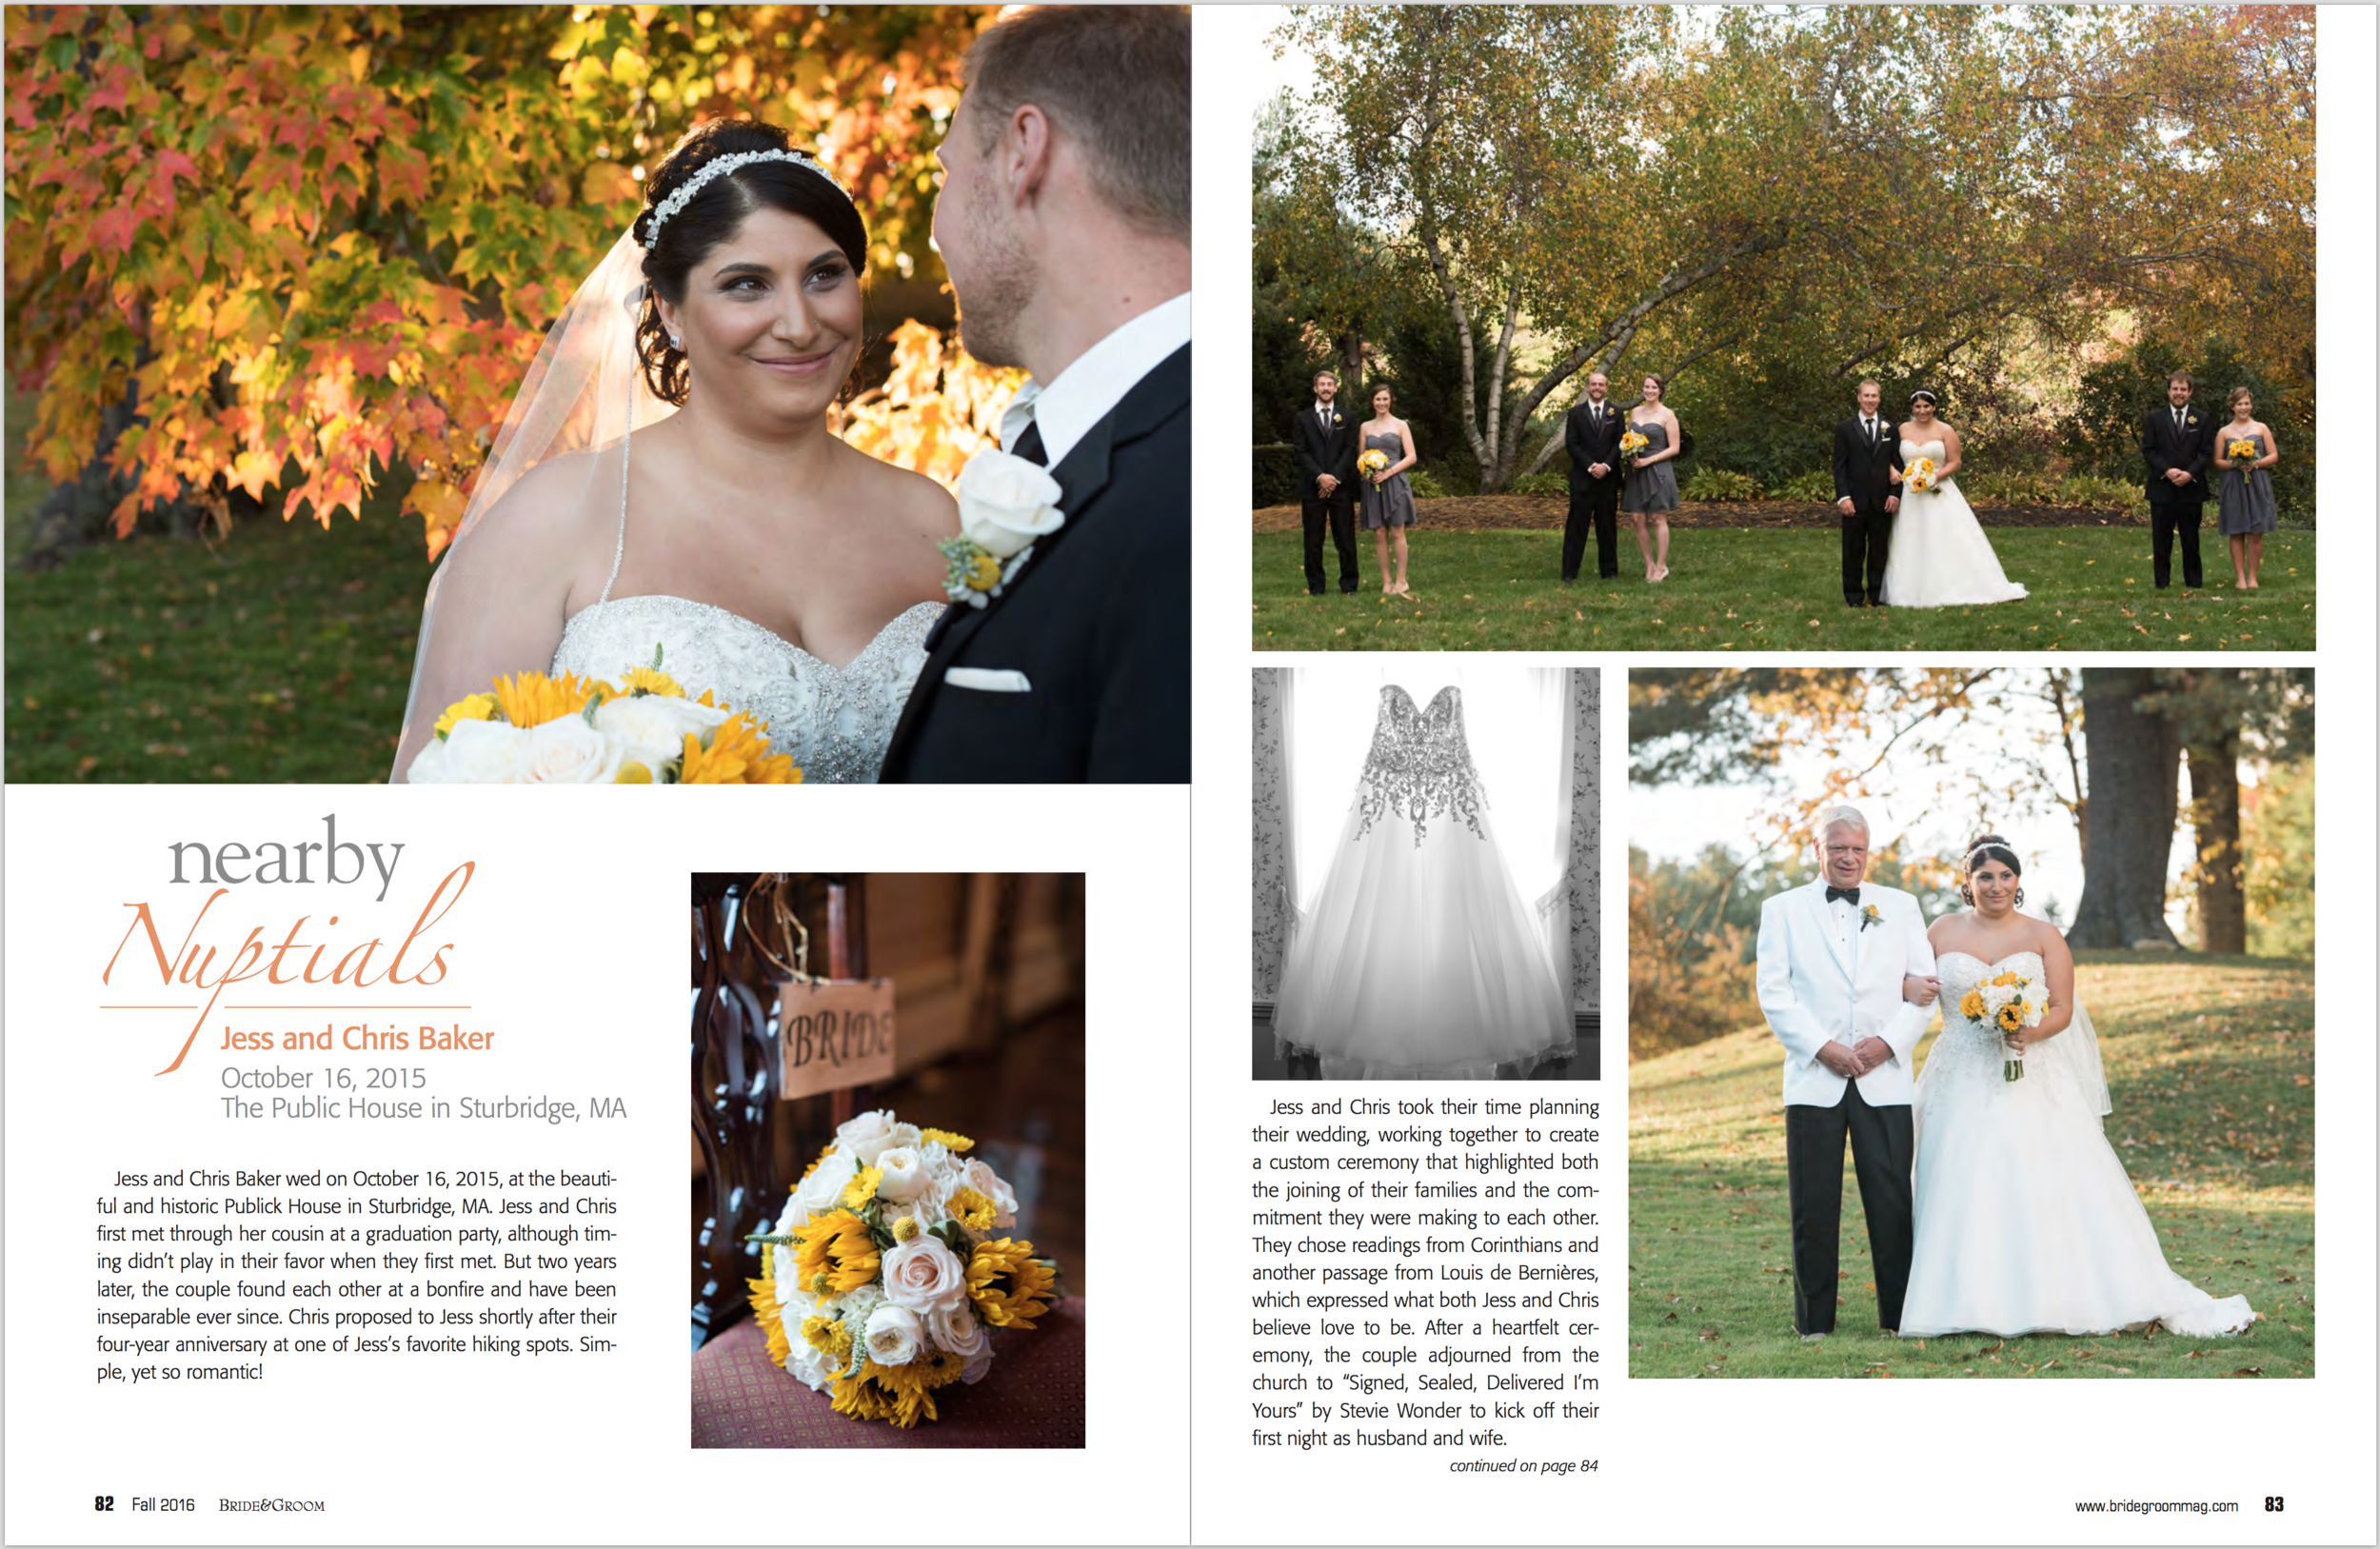 Kara Emily Krantz Photography, New England Outdoor wedding photographer featured in Bride & Groom Magazine.